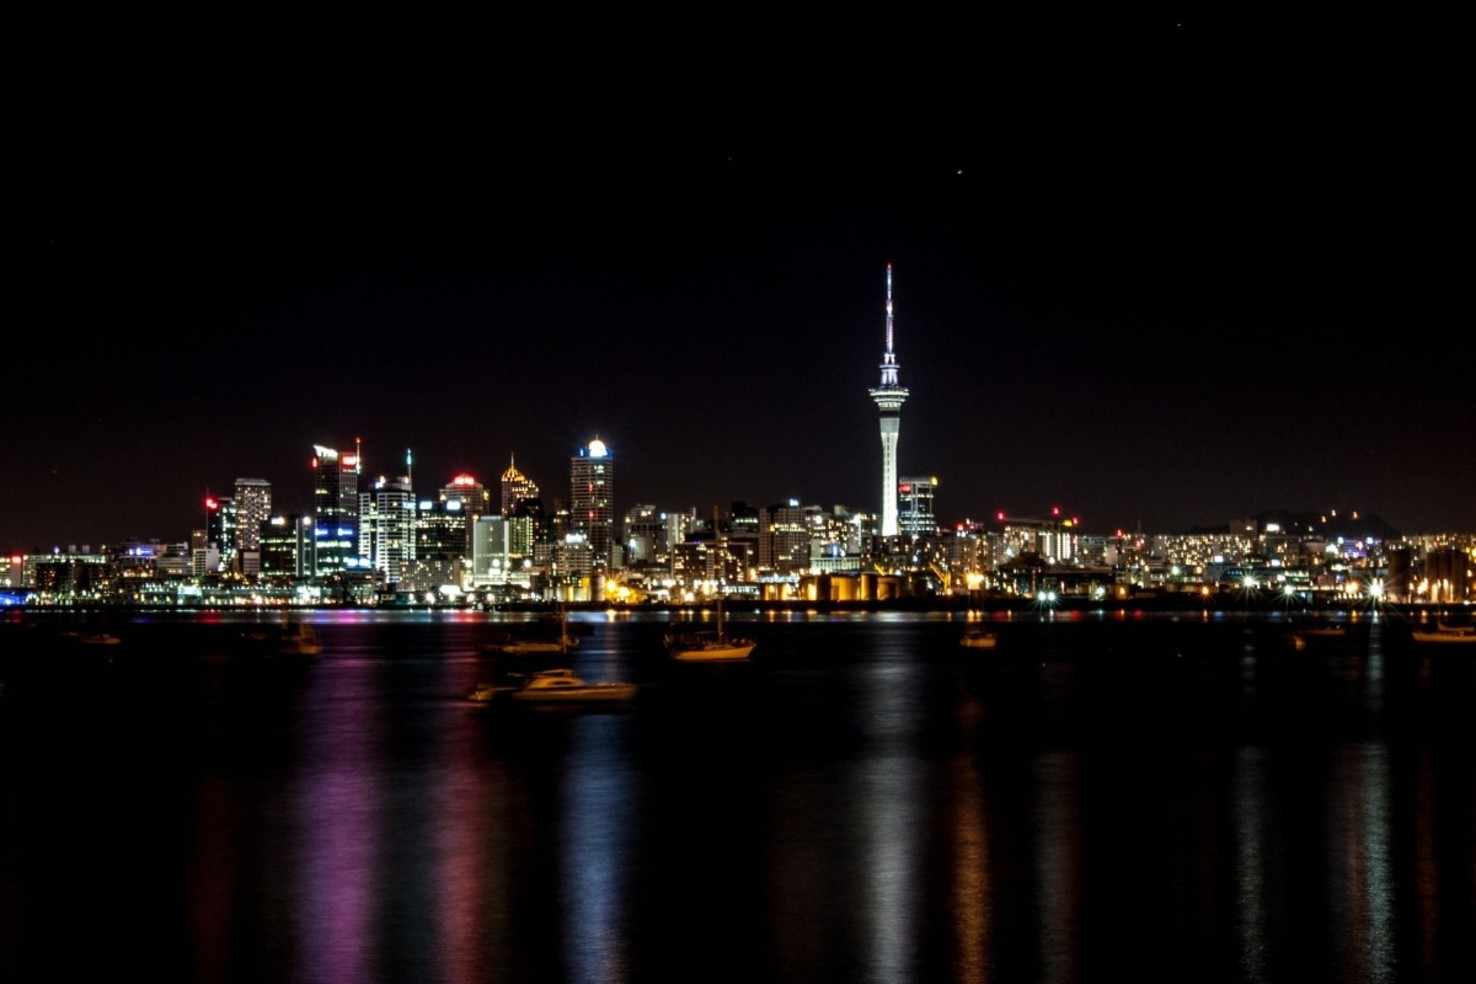 Large night auckland new zealand city